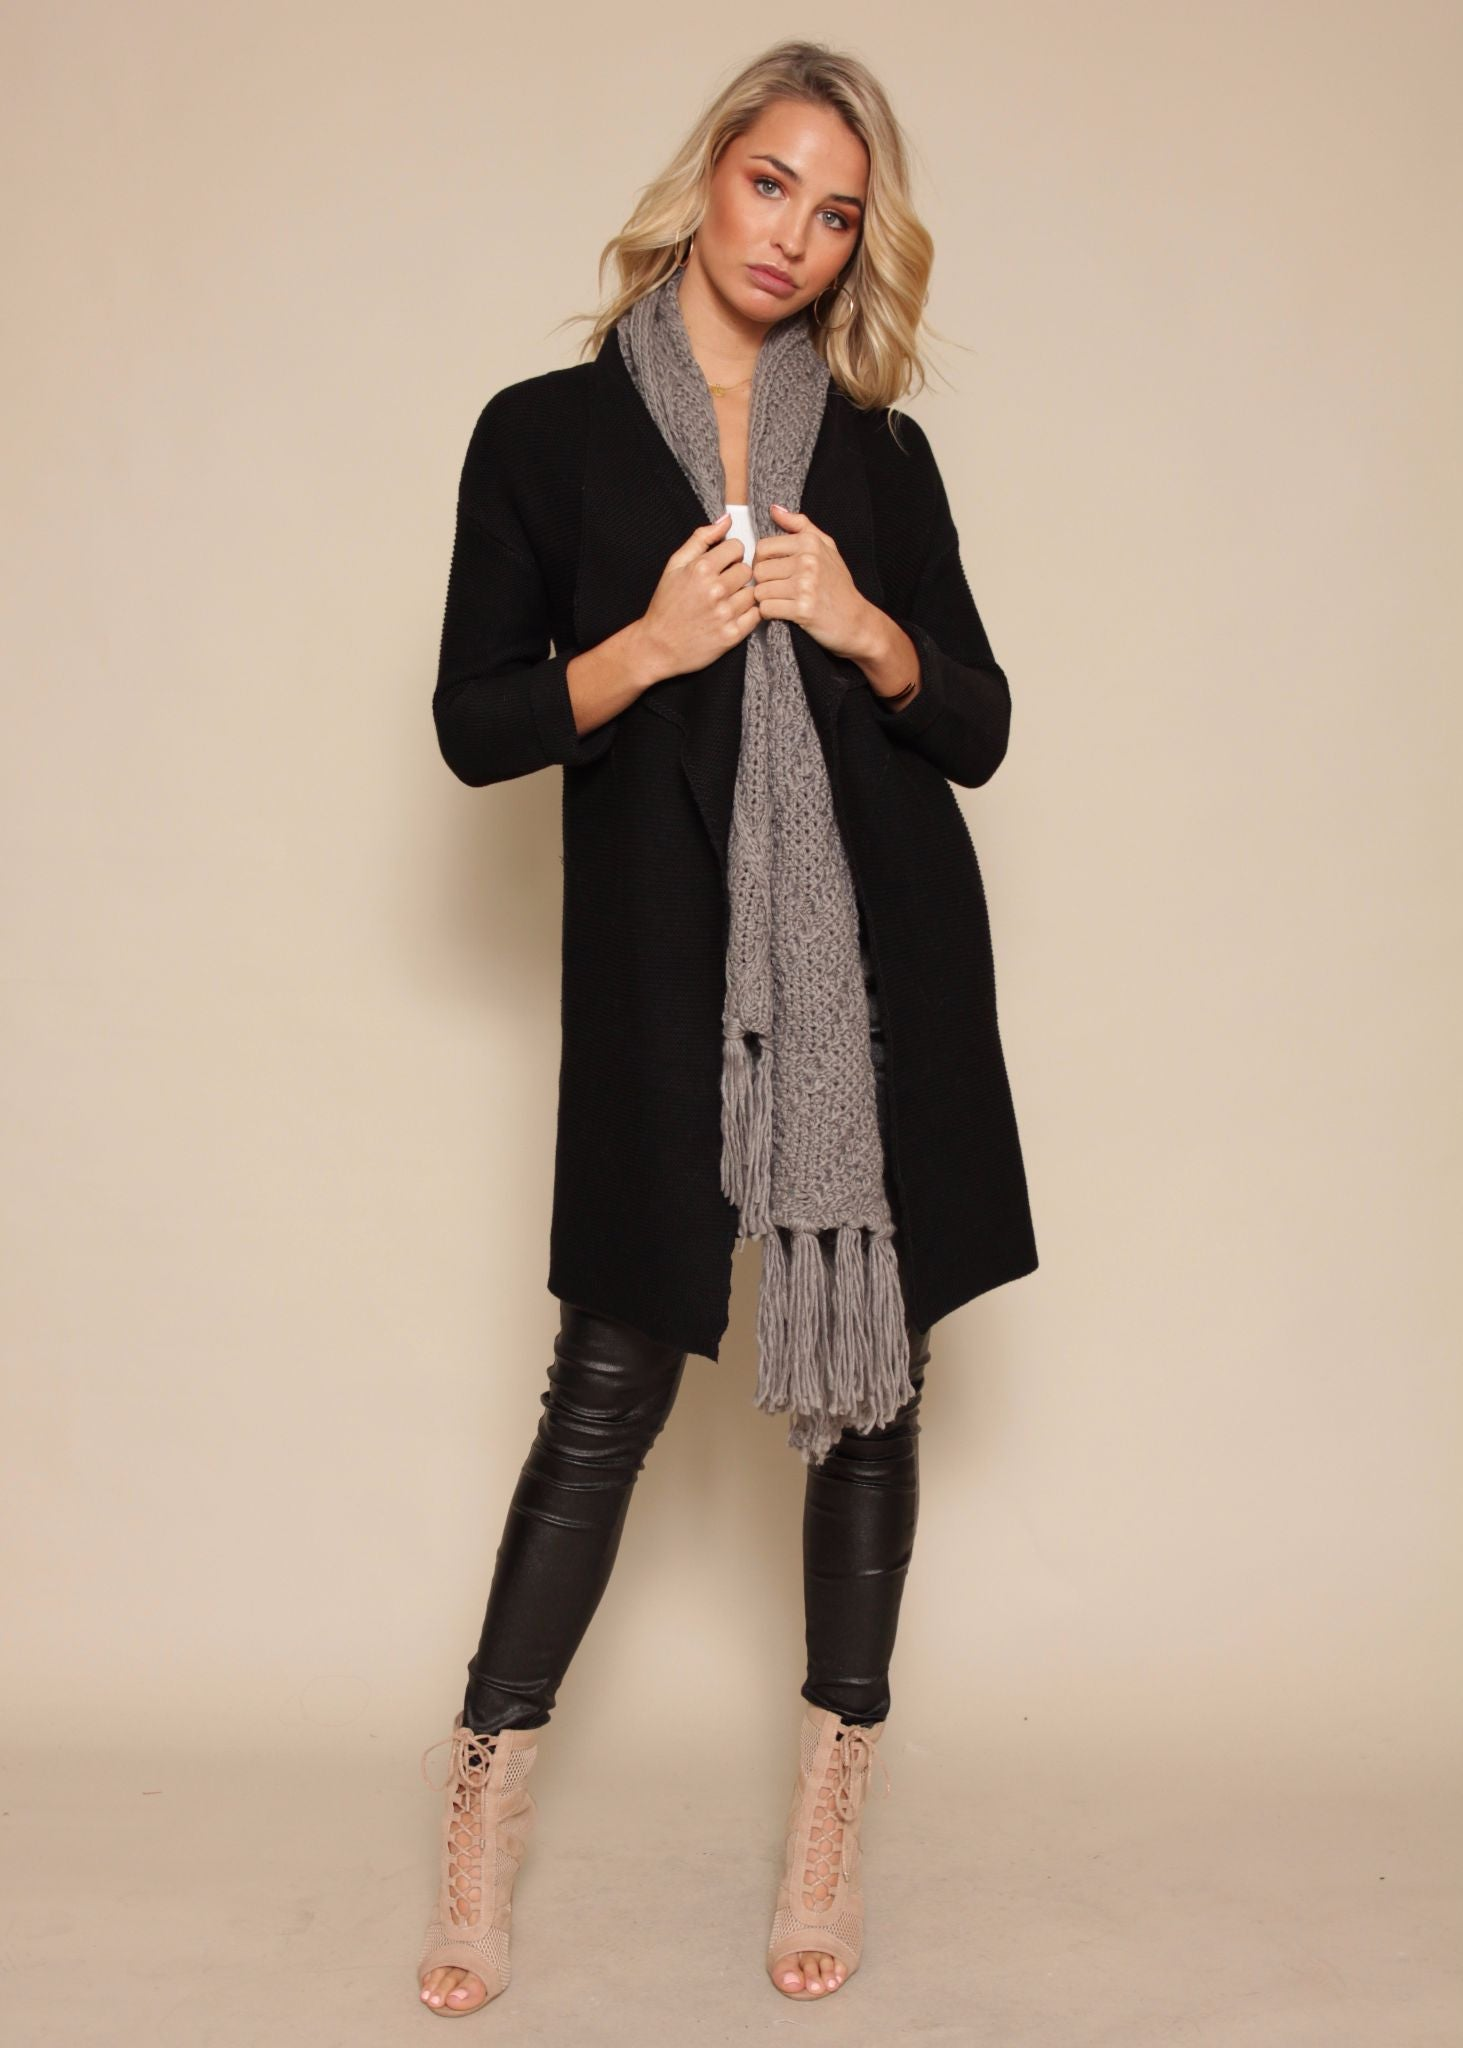 Lover Of Mine Knit Cardigan - Black